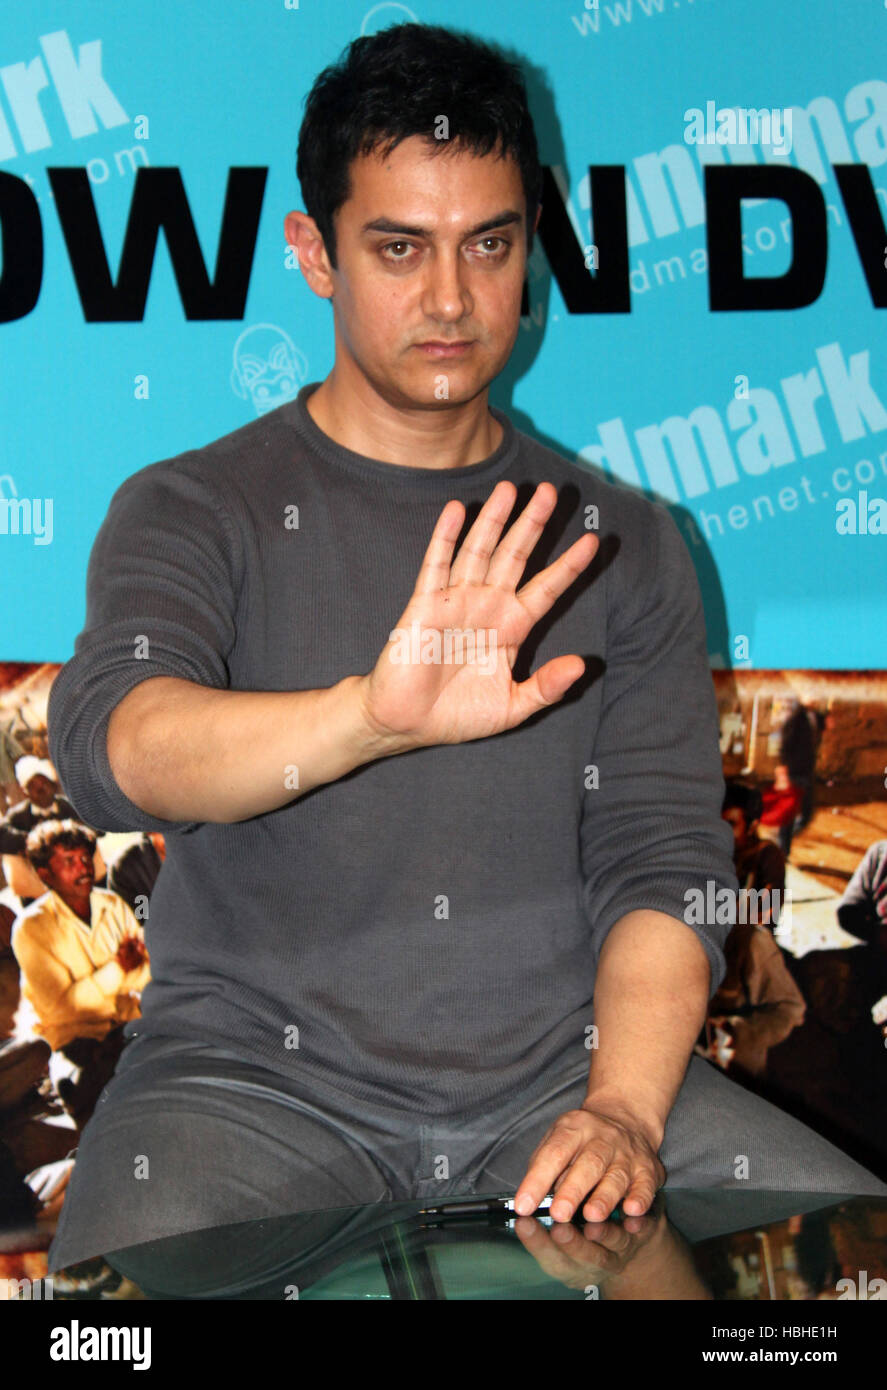 Bollywood actor Aamir Khan gestures during the launch of the DVD of movie Peepli Live in Mumbai, India on November - Stock Image